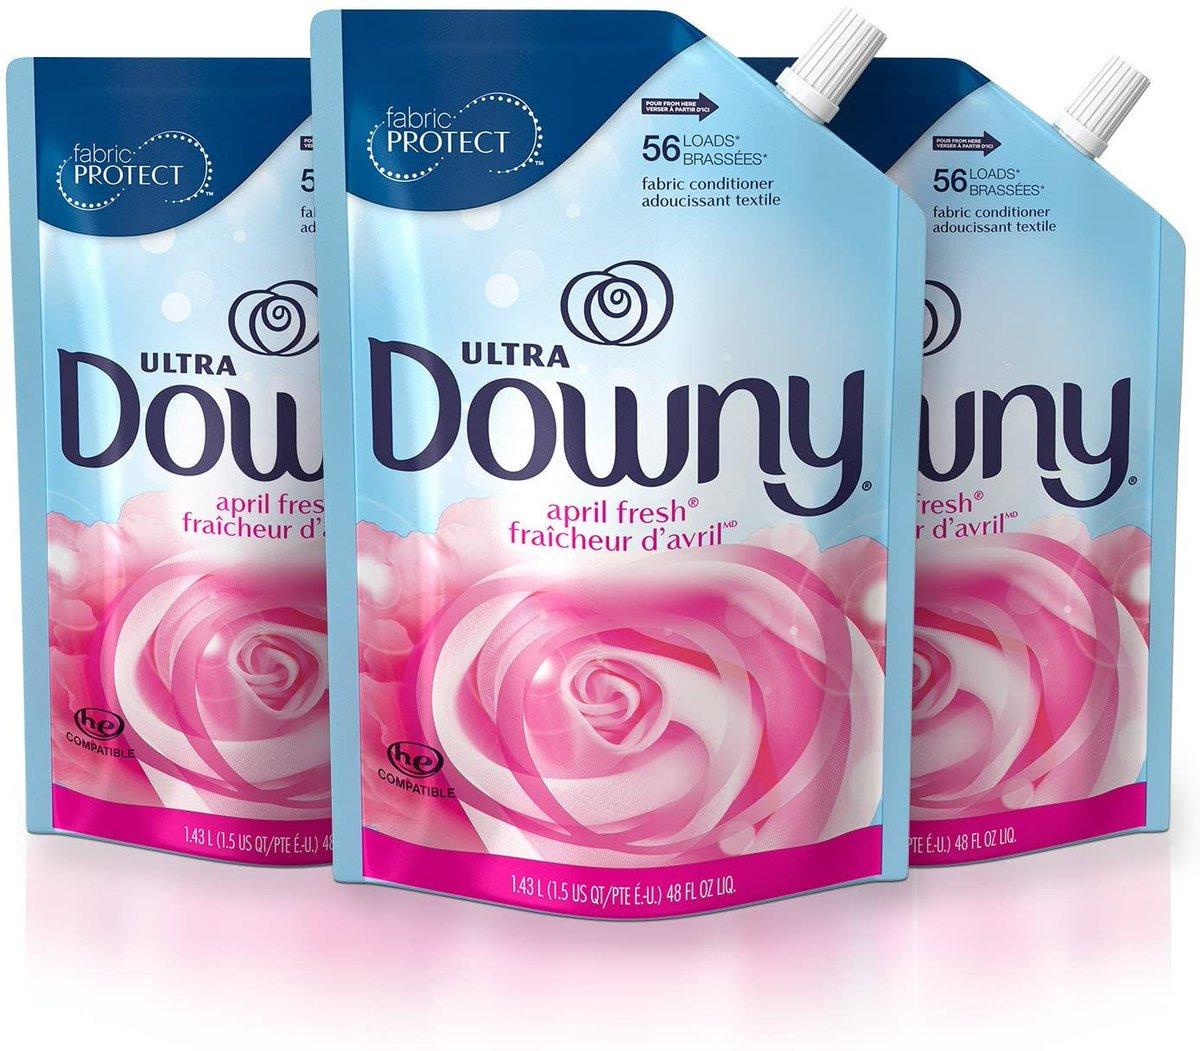 3 Packs of Downy Ultra Liquid Fabric Conditioner (Fabric Softener), April Fresh, 168 Loads Total  ONNLY $10.63 w/ coupon on page https://t.co/eoaktYX0yZ  #steals #deals #stealsanddeals #promotion https://t.co/LCj7W3efAv